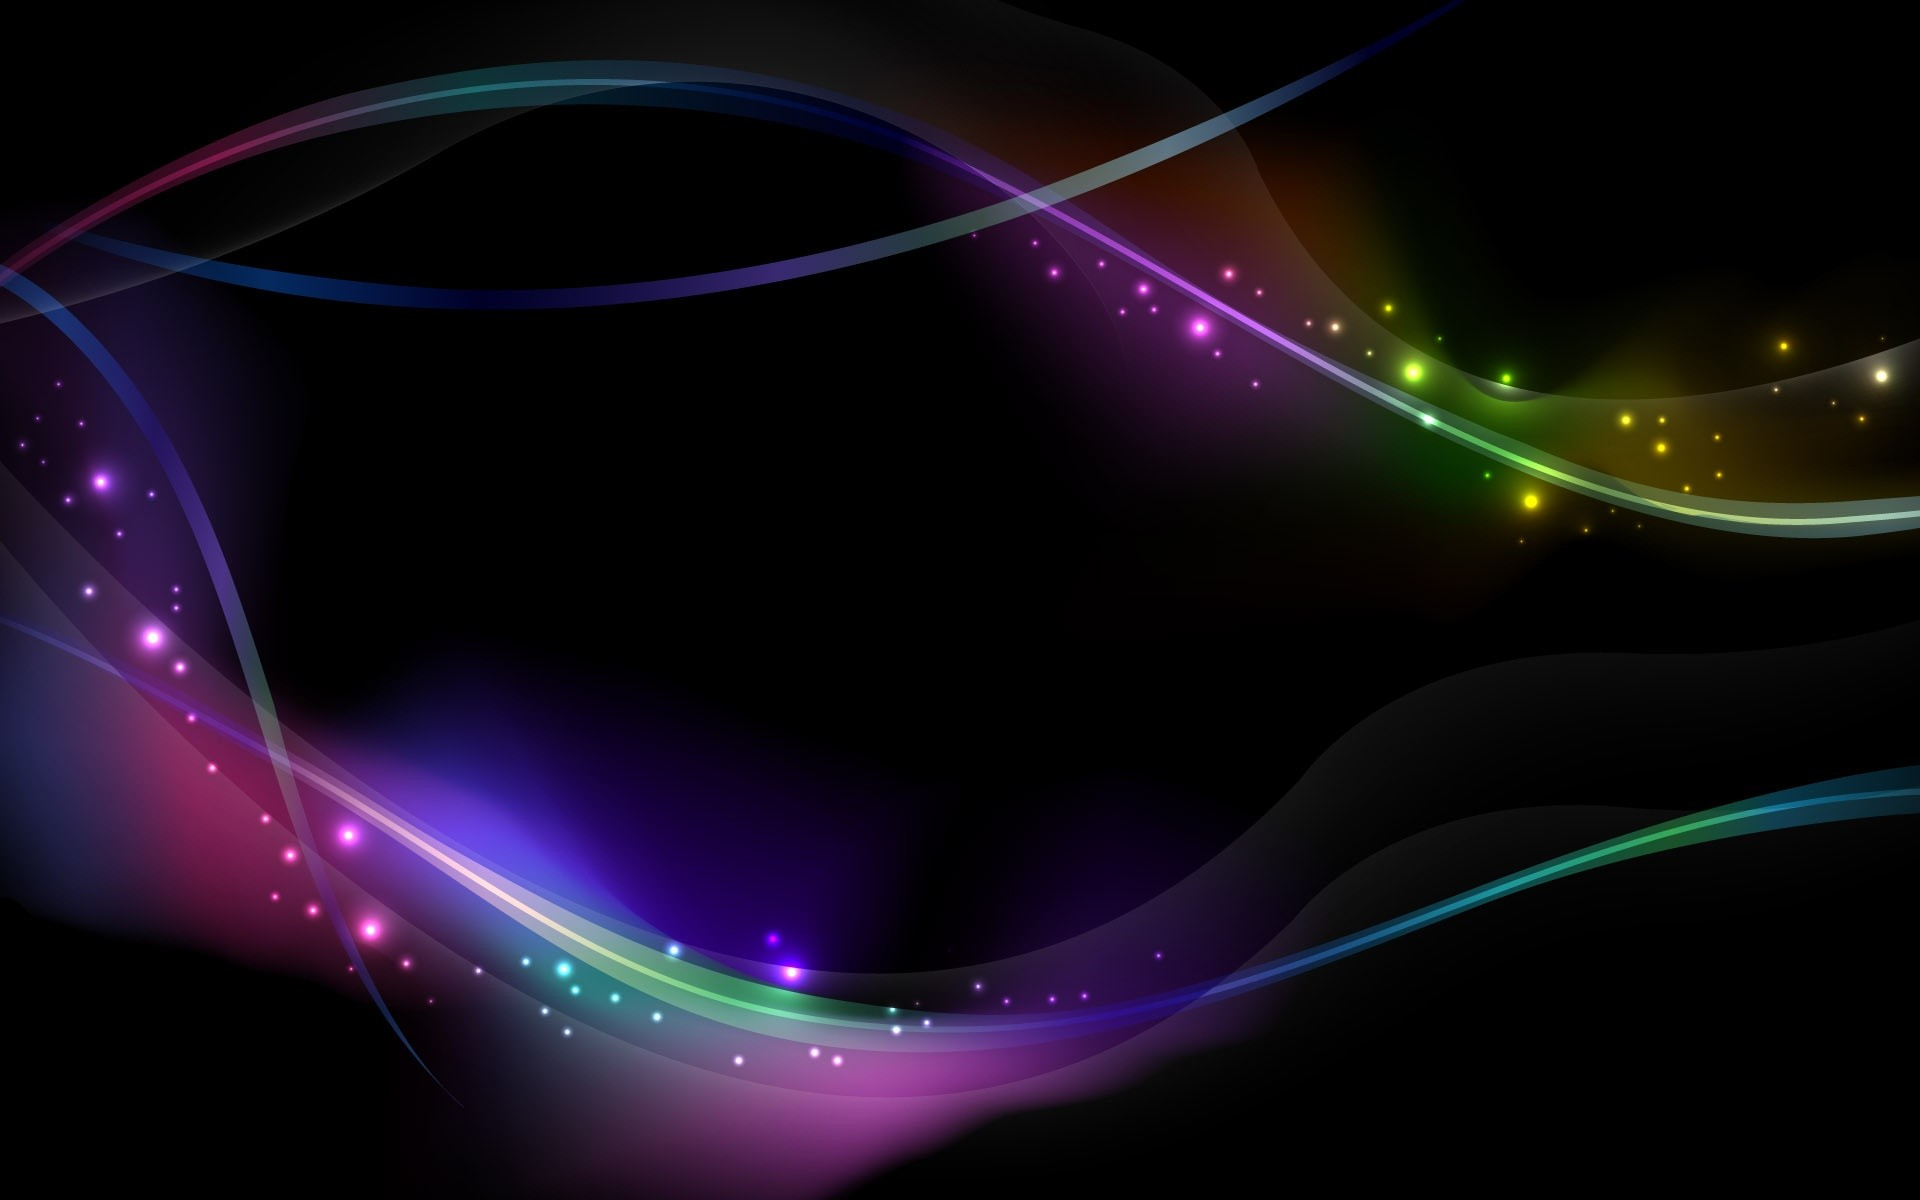 Colorful Backgrounds HD – HD wallpapers